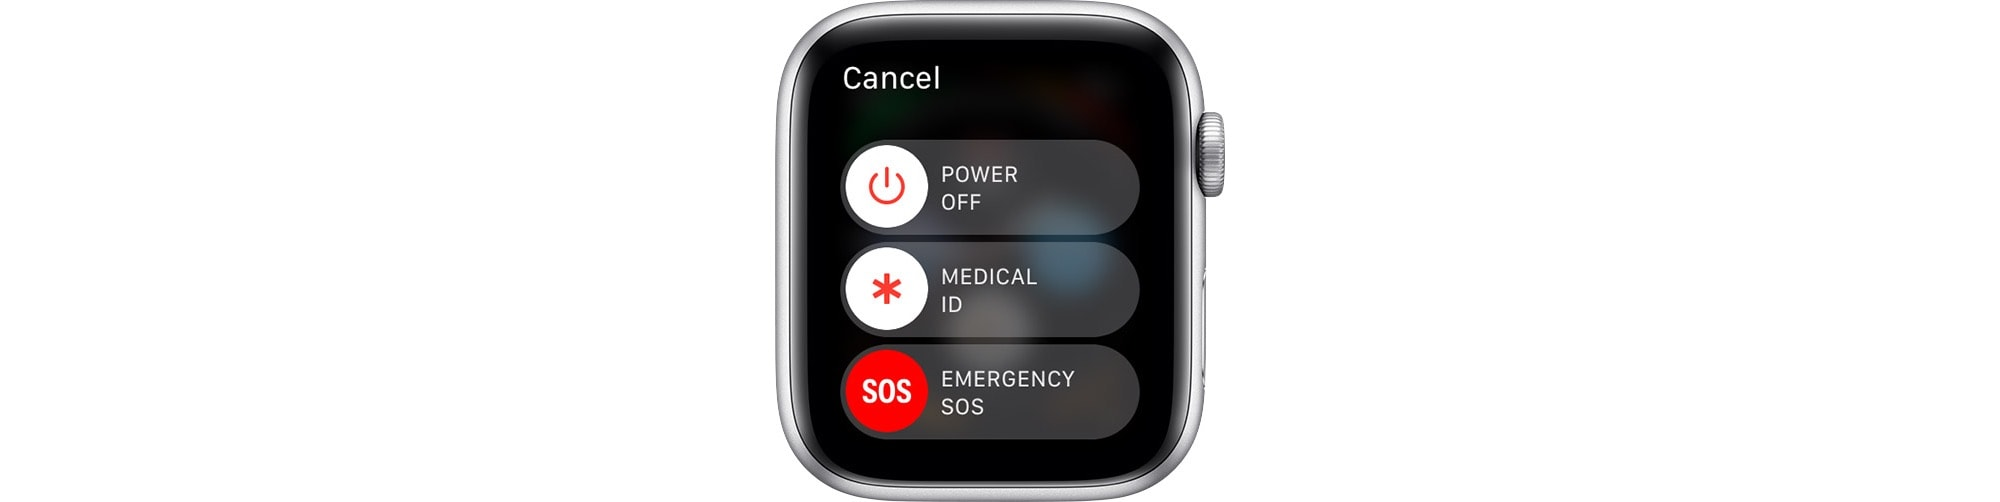 Long-press the Digital Crown to get the Apple Watch Emergency SOS slider.